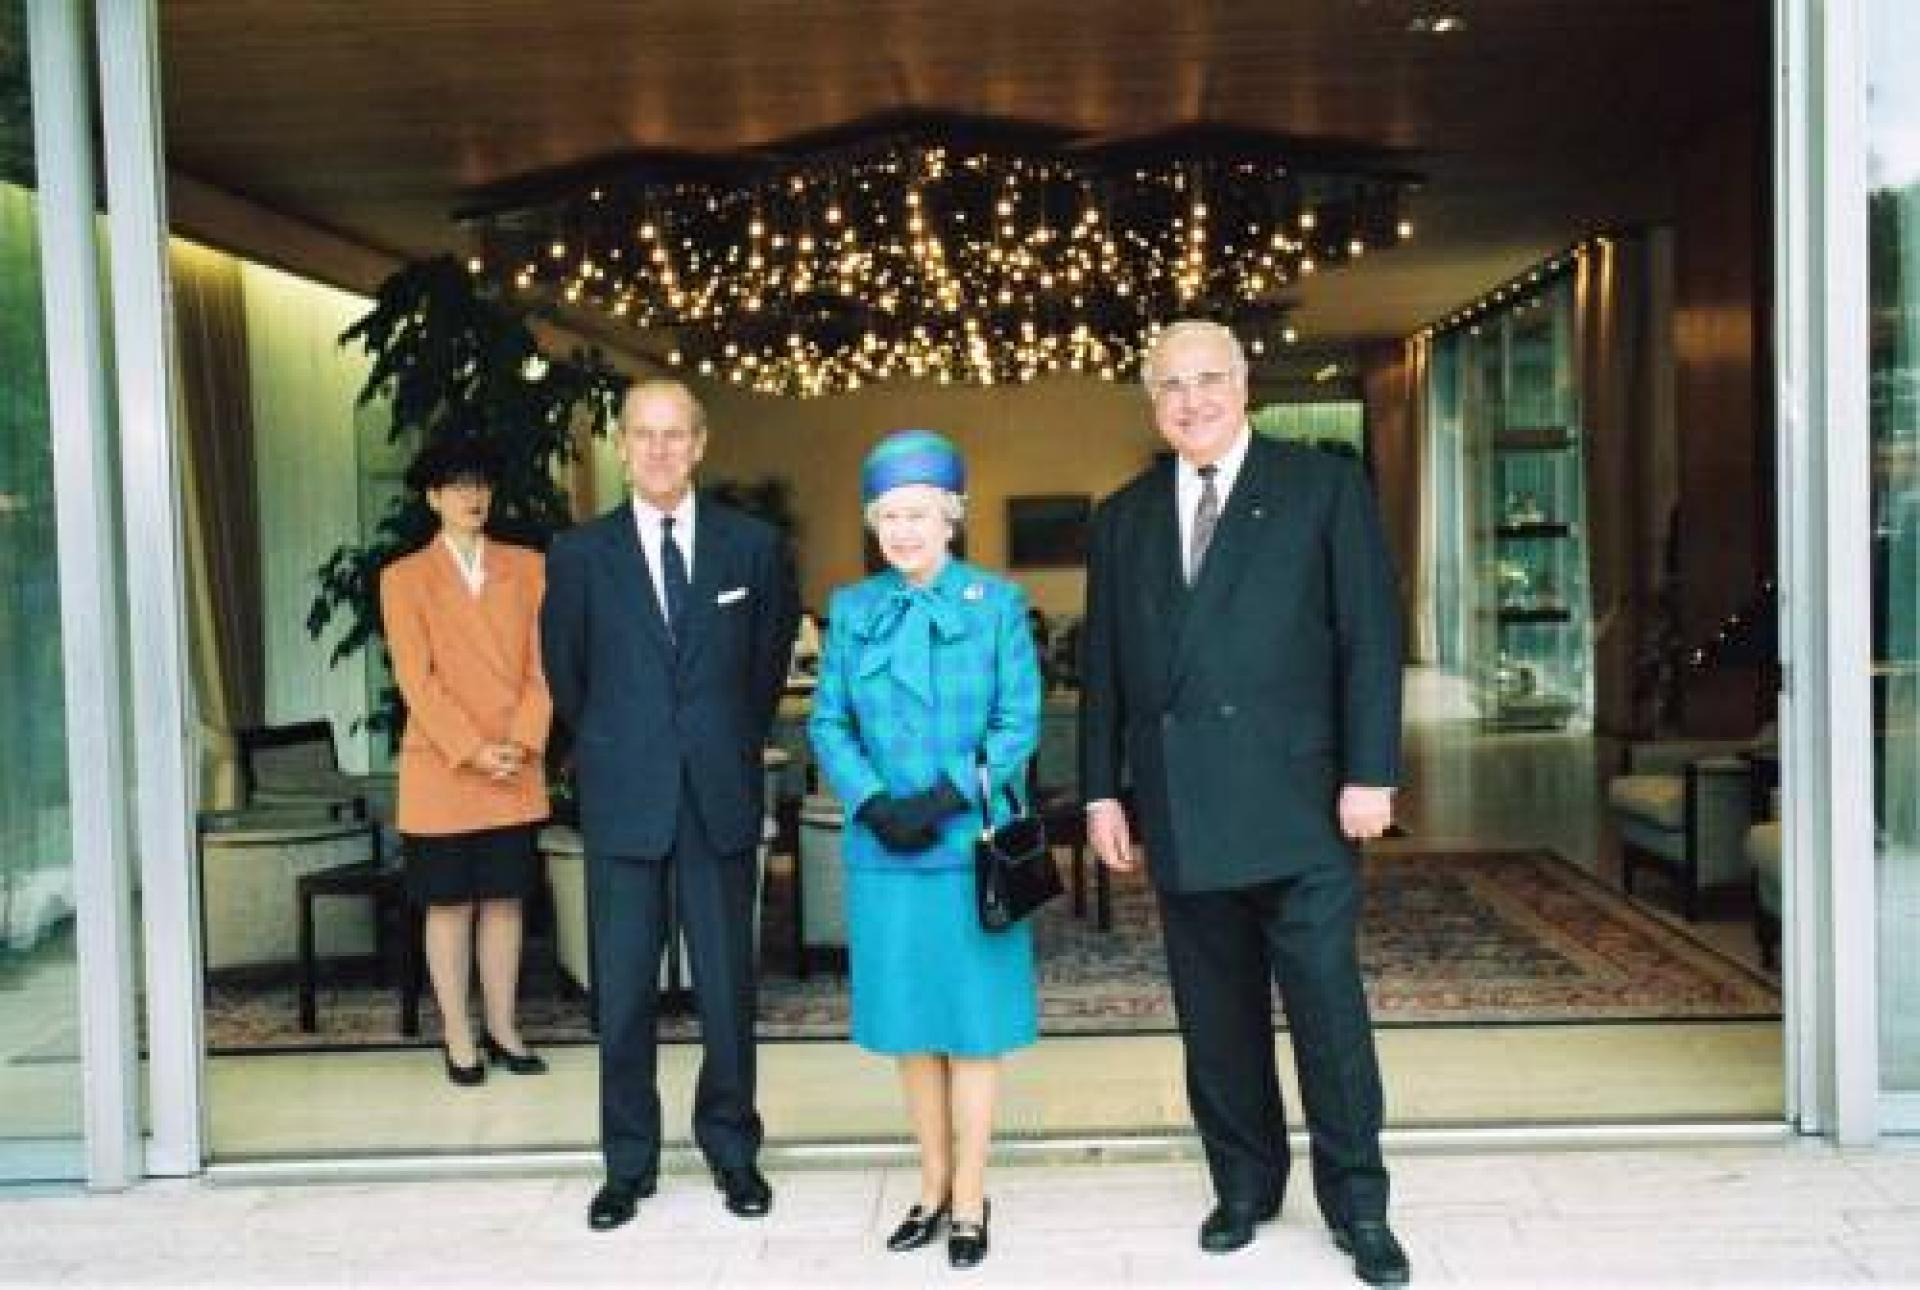 Prince Philip, Queen Elizabeth II and the ex-Chancellor of Germany Helmut Kohl front of the bungalow of the Chancellor in Bonn.